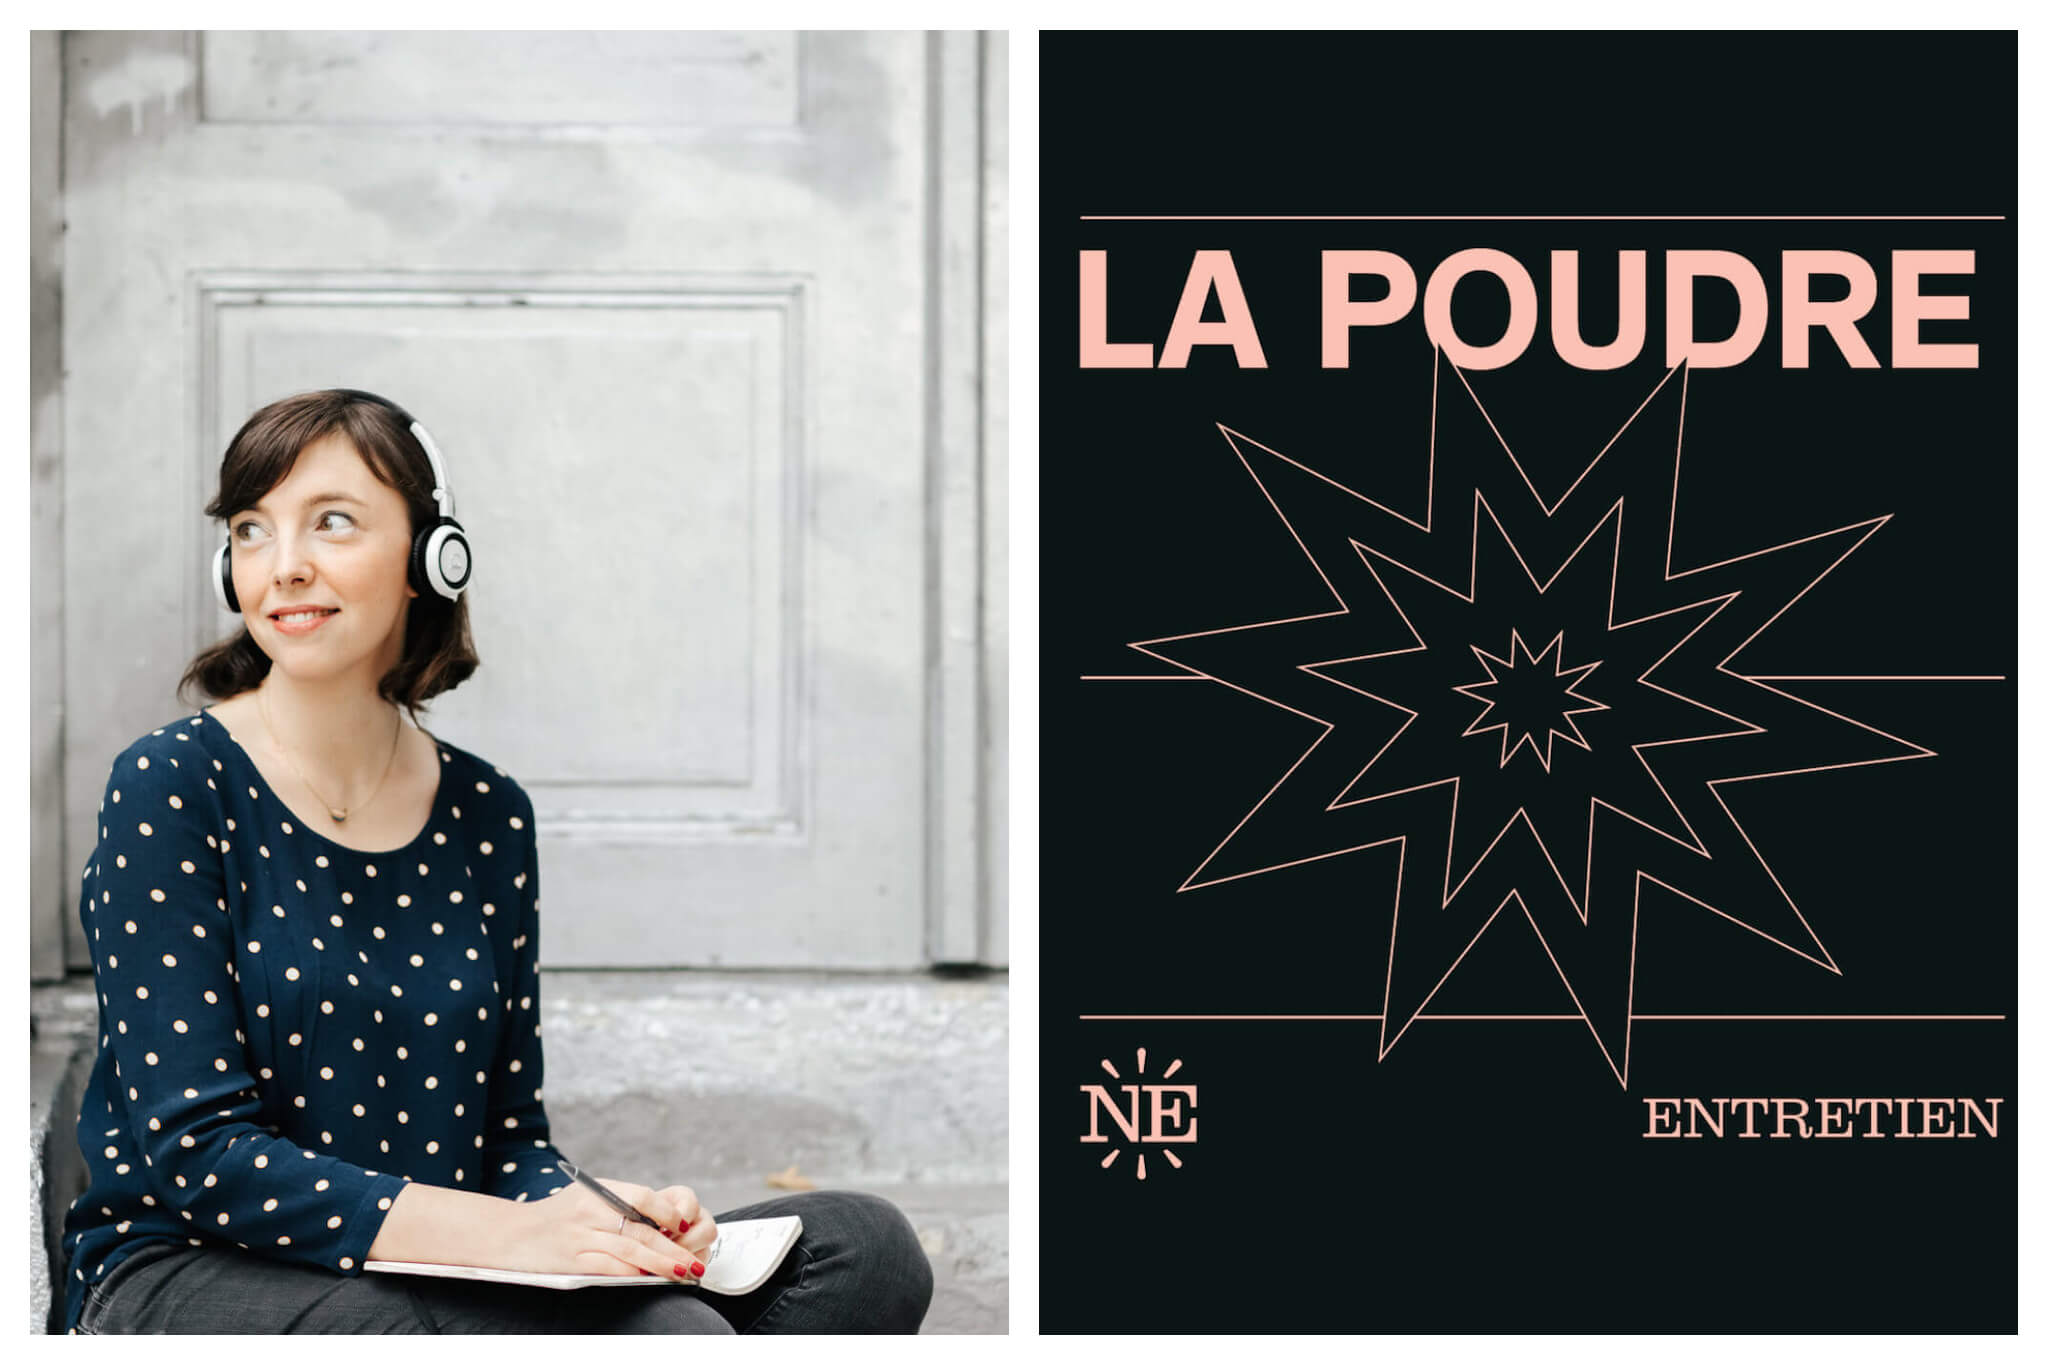 Left: Clotilde Dusoulier, host of the Change Ma Vie podcast, sits with a pair of headphones on her head and a pen in her hand. She smiles off to the distance, Right: Cover of La Poudre podcast, with the title written in bold pink type and an illustration of an explosion below it